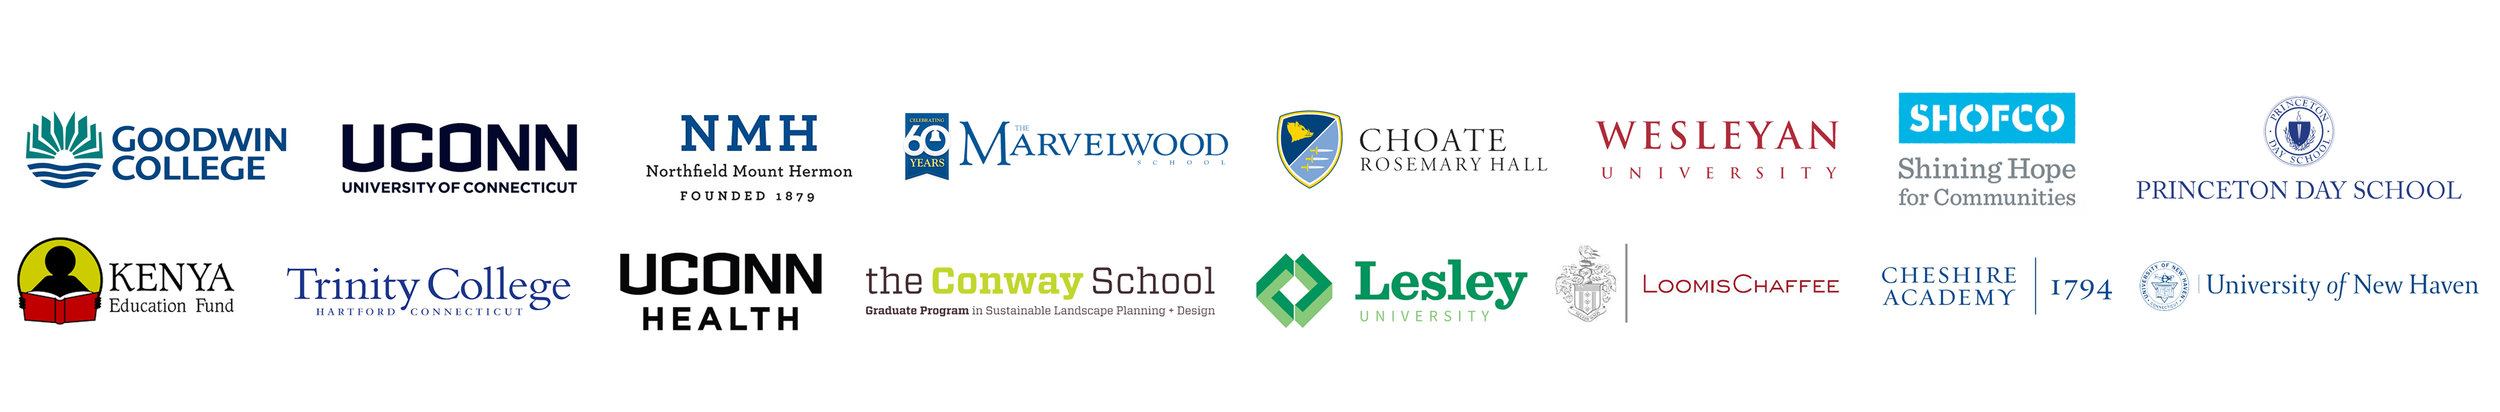 phv education client logos horizontal.jpg